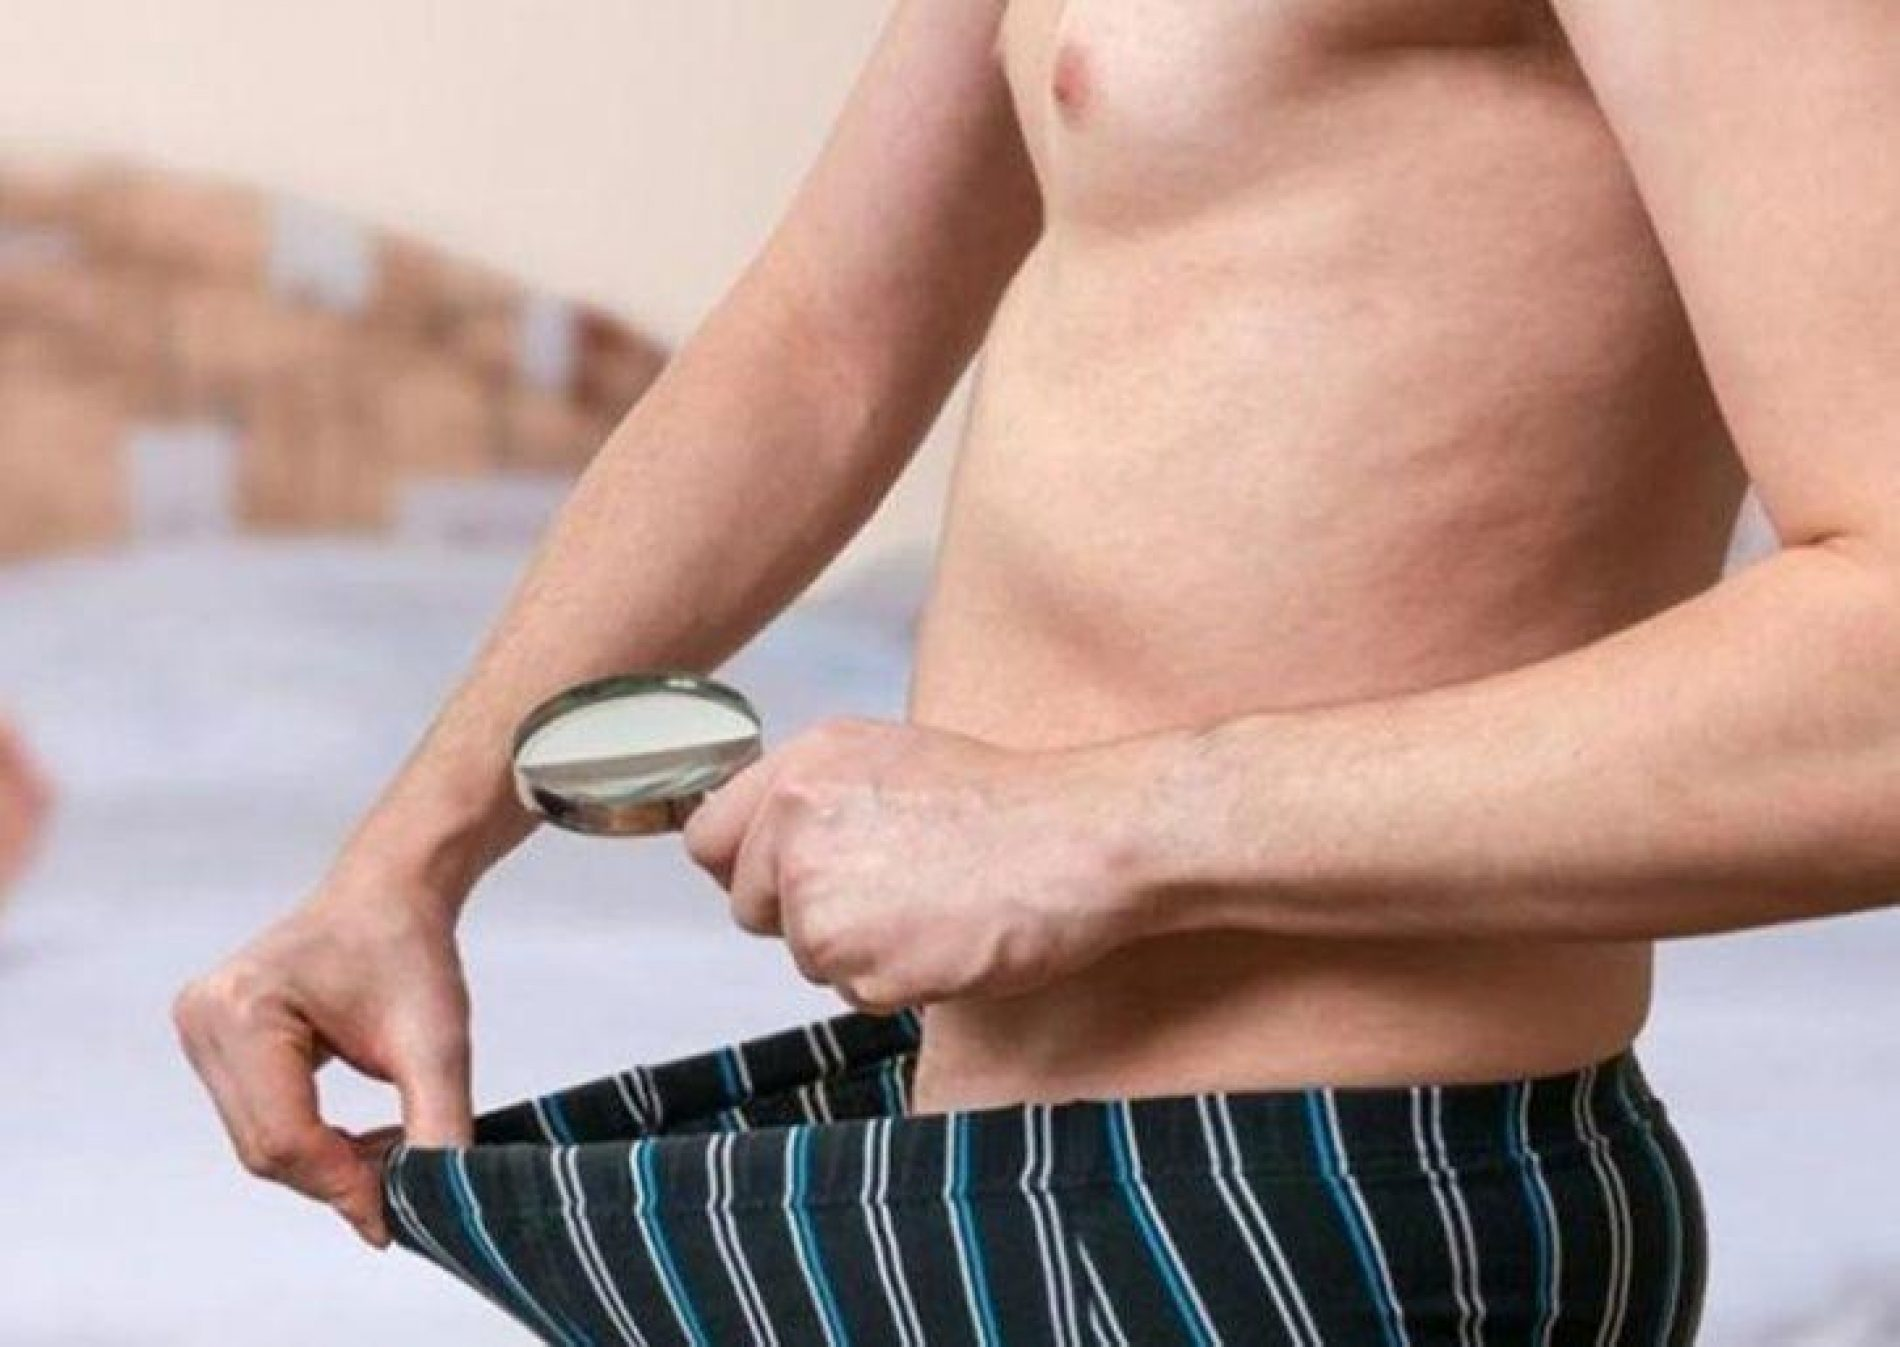 Penis enlargement procedures don't work, study finds